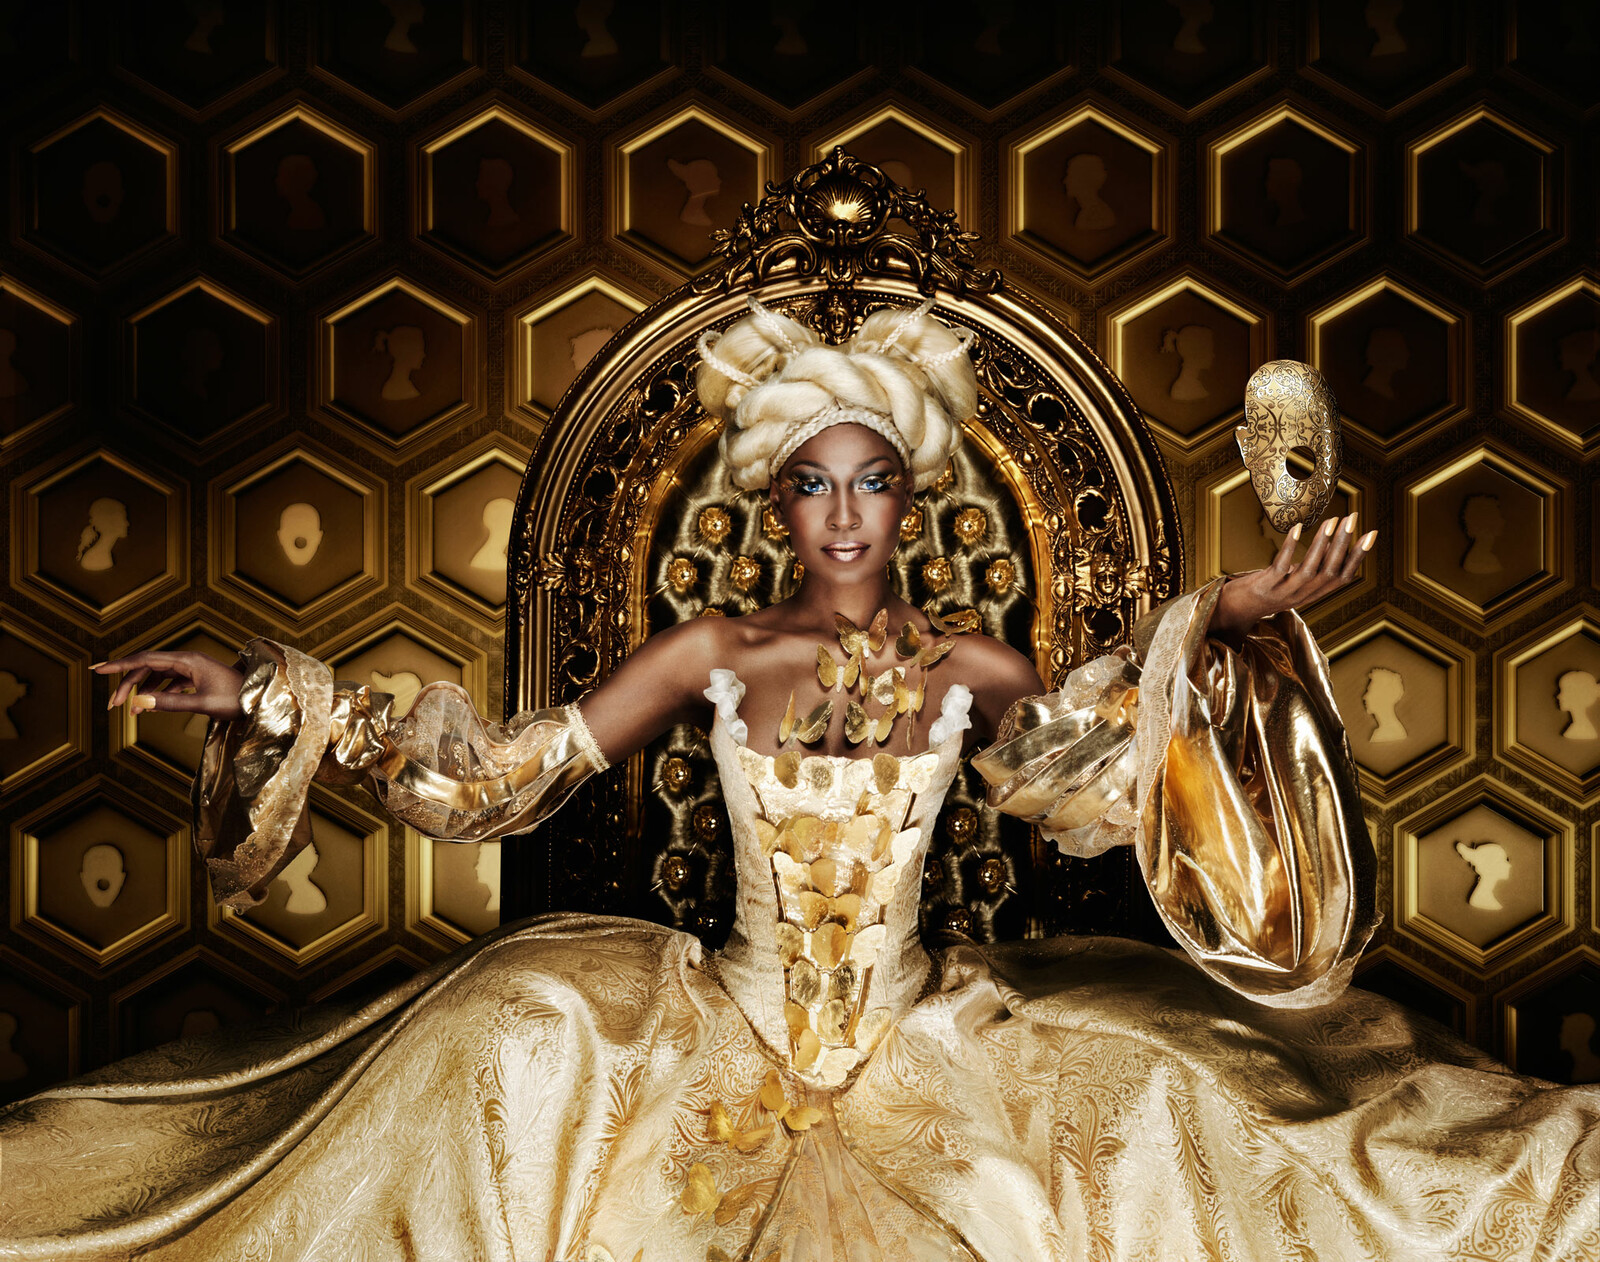 Gold Queen by Marcel Wanders